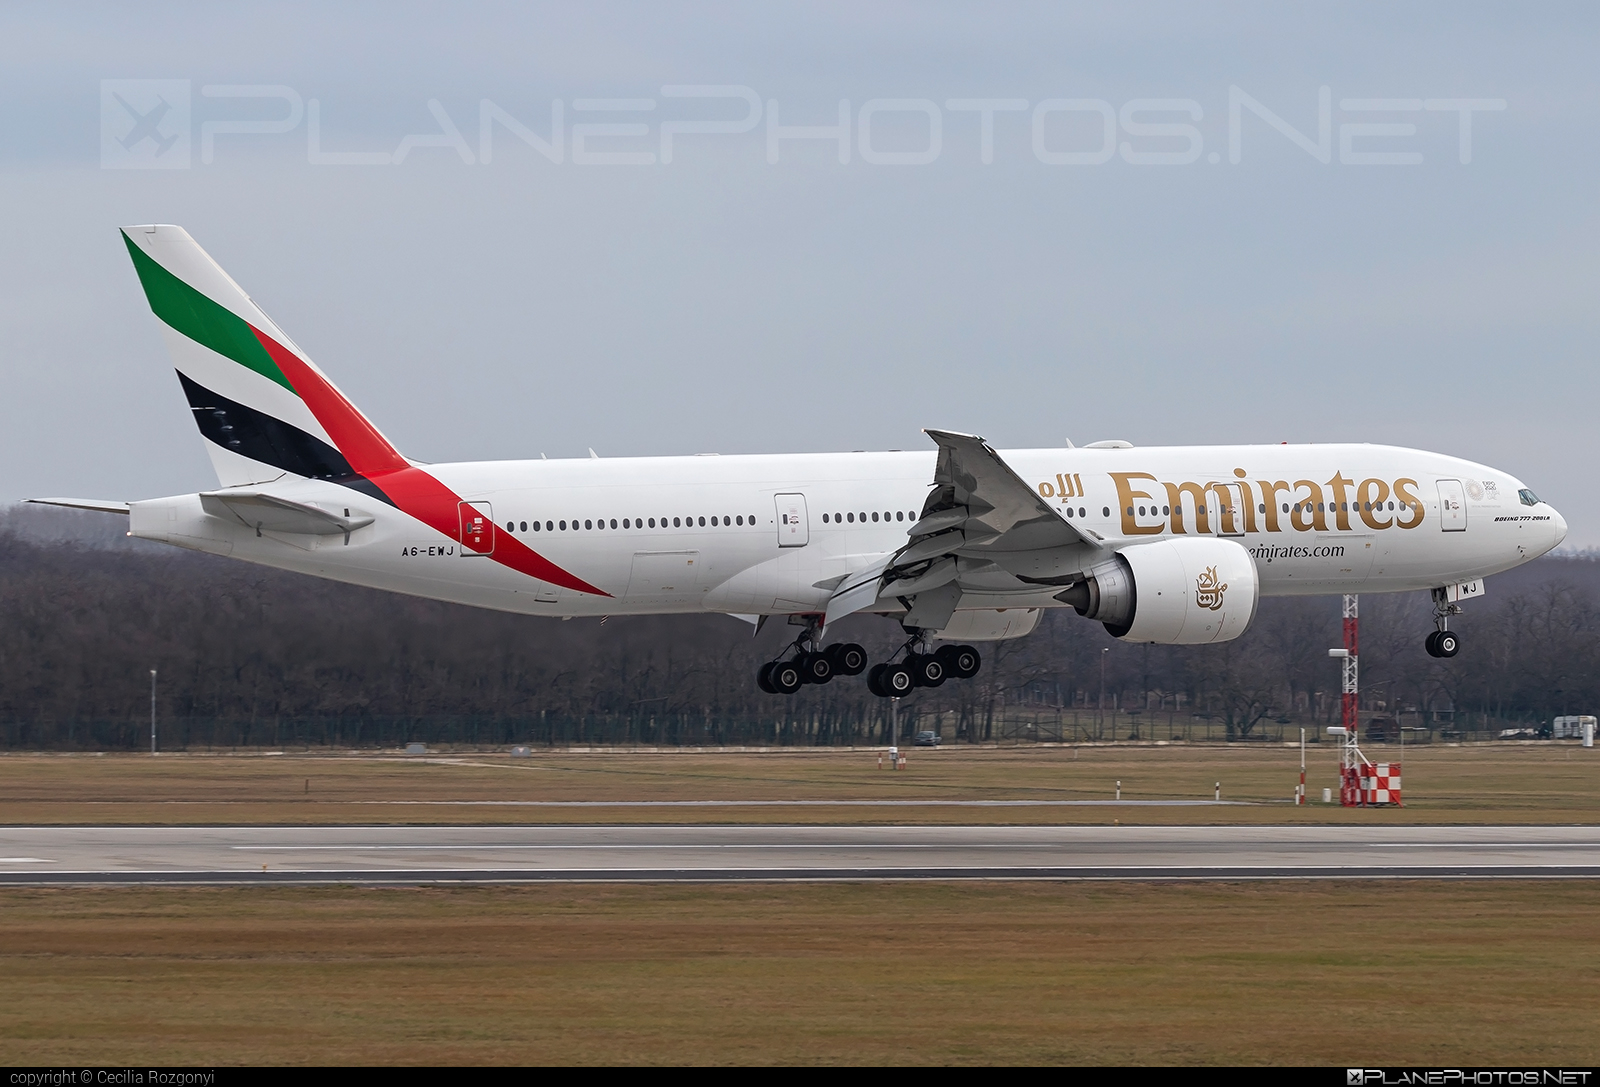 Boeing 777-200LR - A6-EWJ operated by Emirates #b777 #b777lr #boeing #boeing777 #emirates #tripleseven